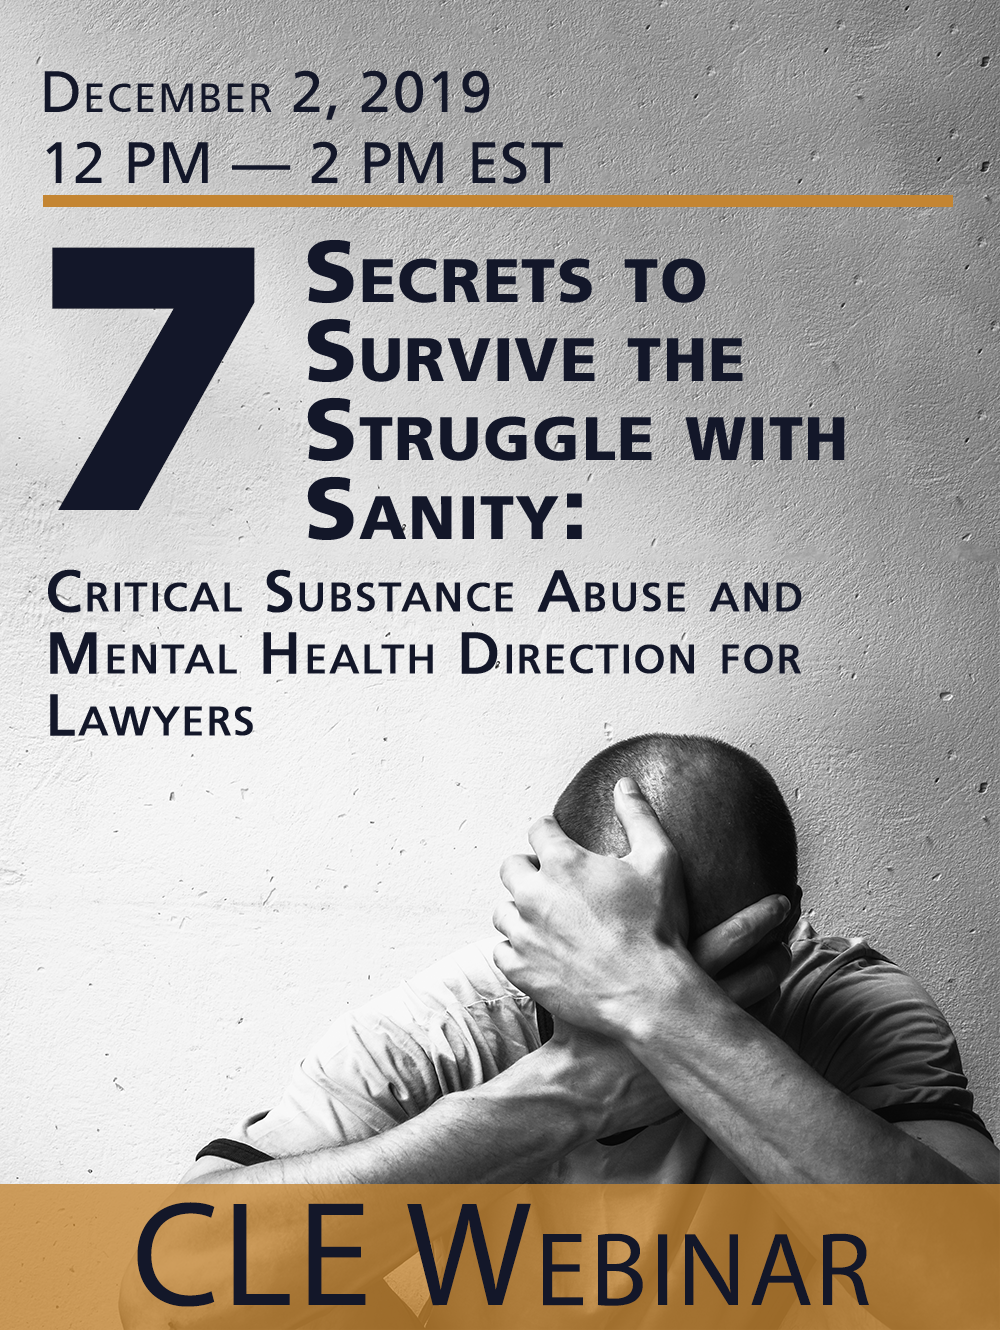 Seven Secrets to Survive the Struggle with Sanity  - Webinar